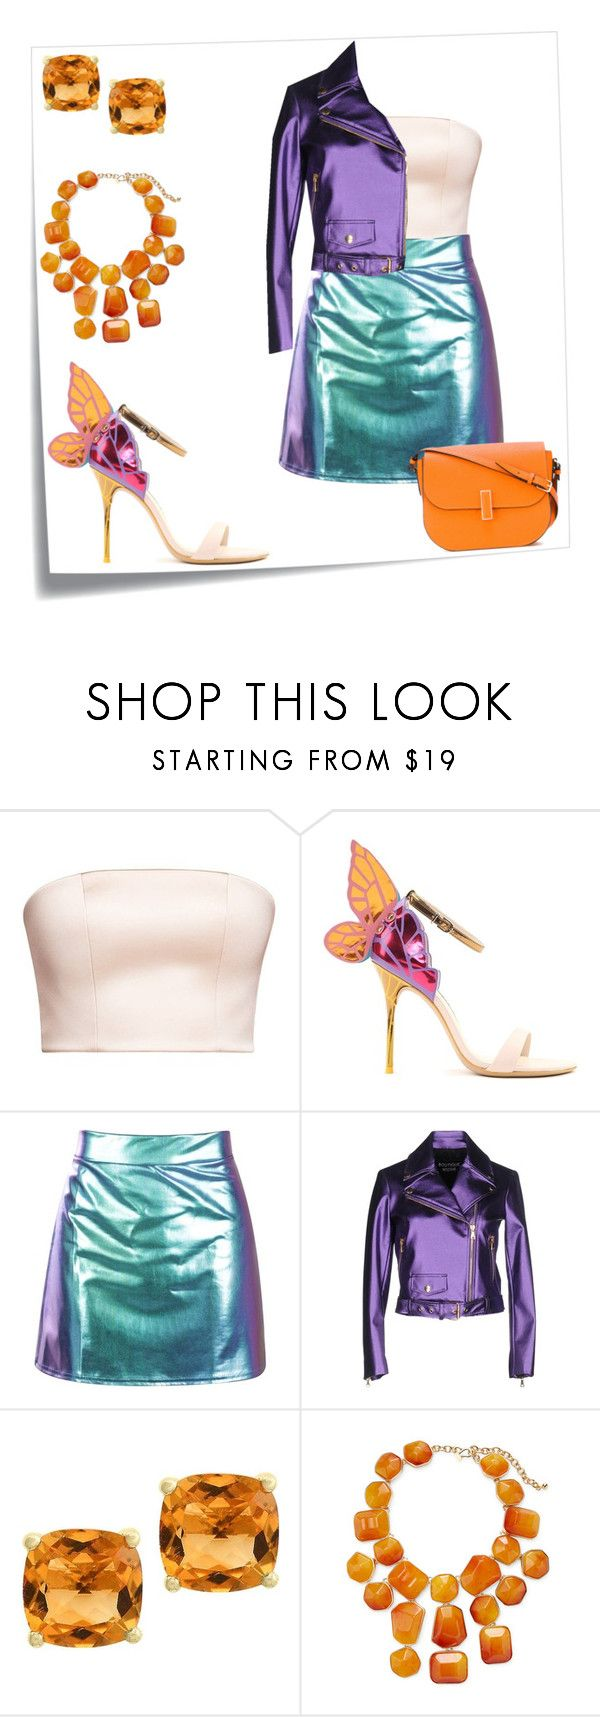 """""""Unbenannt #285"""" by arts22 on Polyvore featuring Mode, Post-It, Sophia Webster, Boutique Moschino, Effy Jewelry, Kenneth Jay Lane und Valextra"""